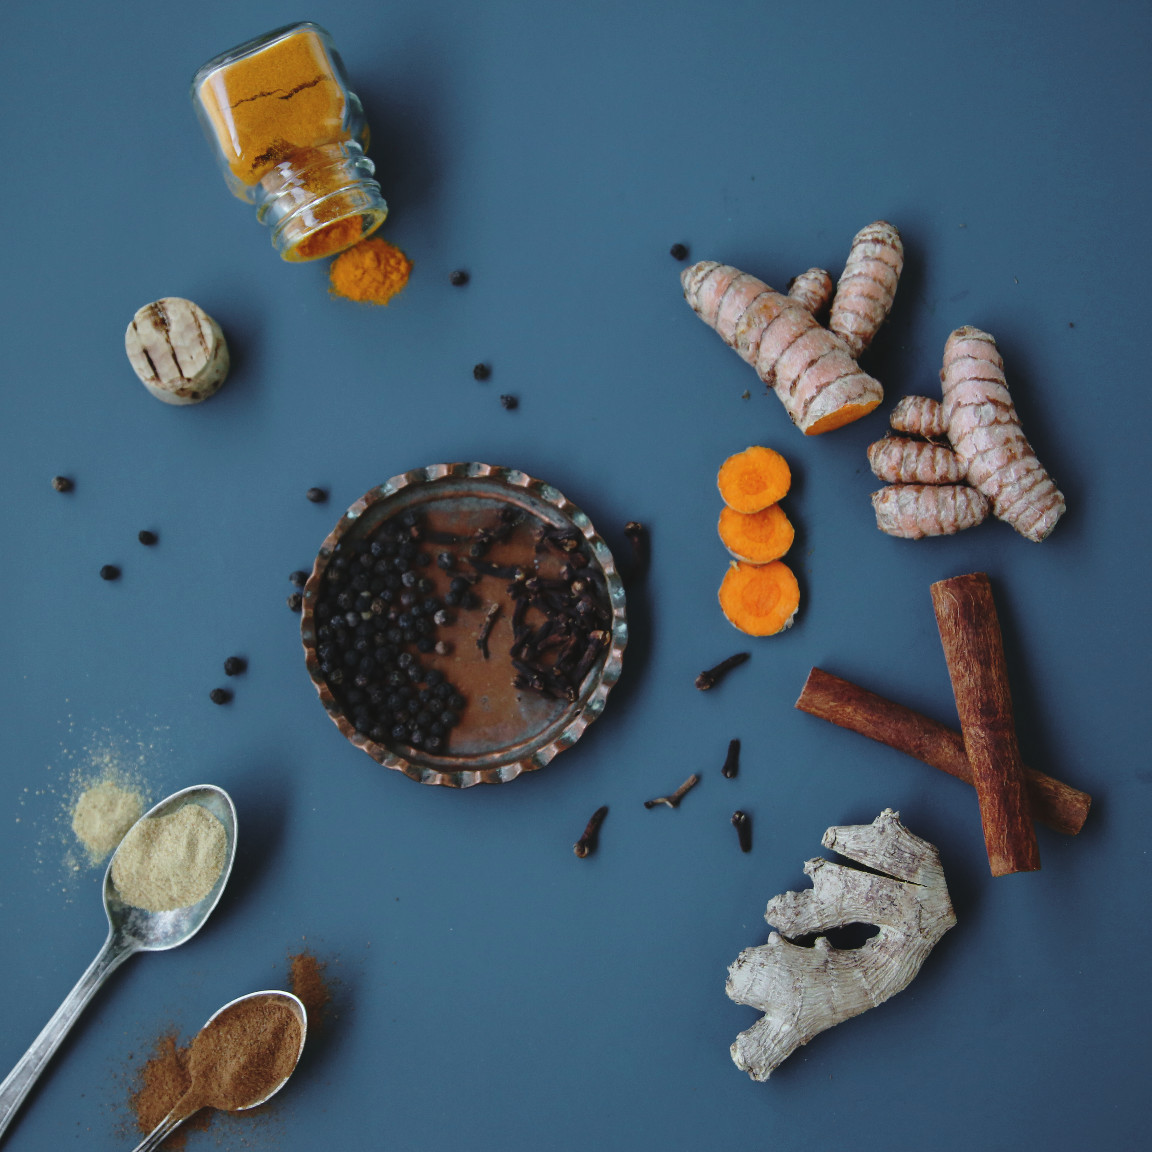 Spices. Golden milk   Turmeric milk   on Due fili d'erba   Two blades of grass   Recipe, styling and photo by Thais FK